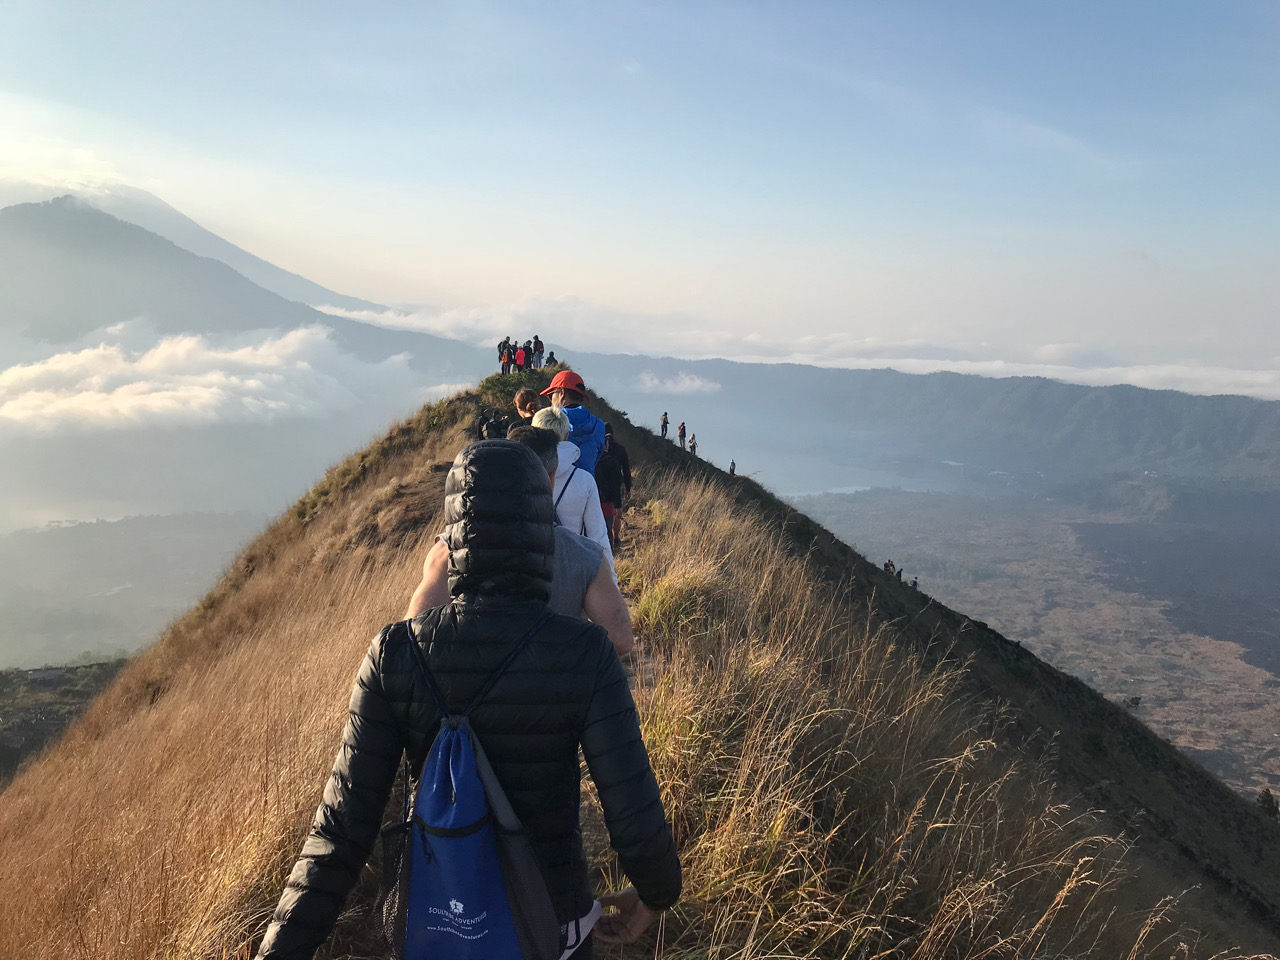 Hiking down the volcano